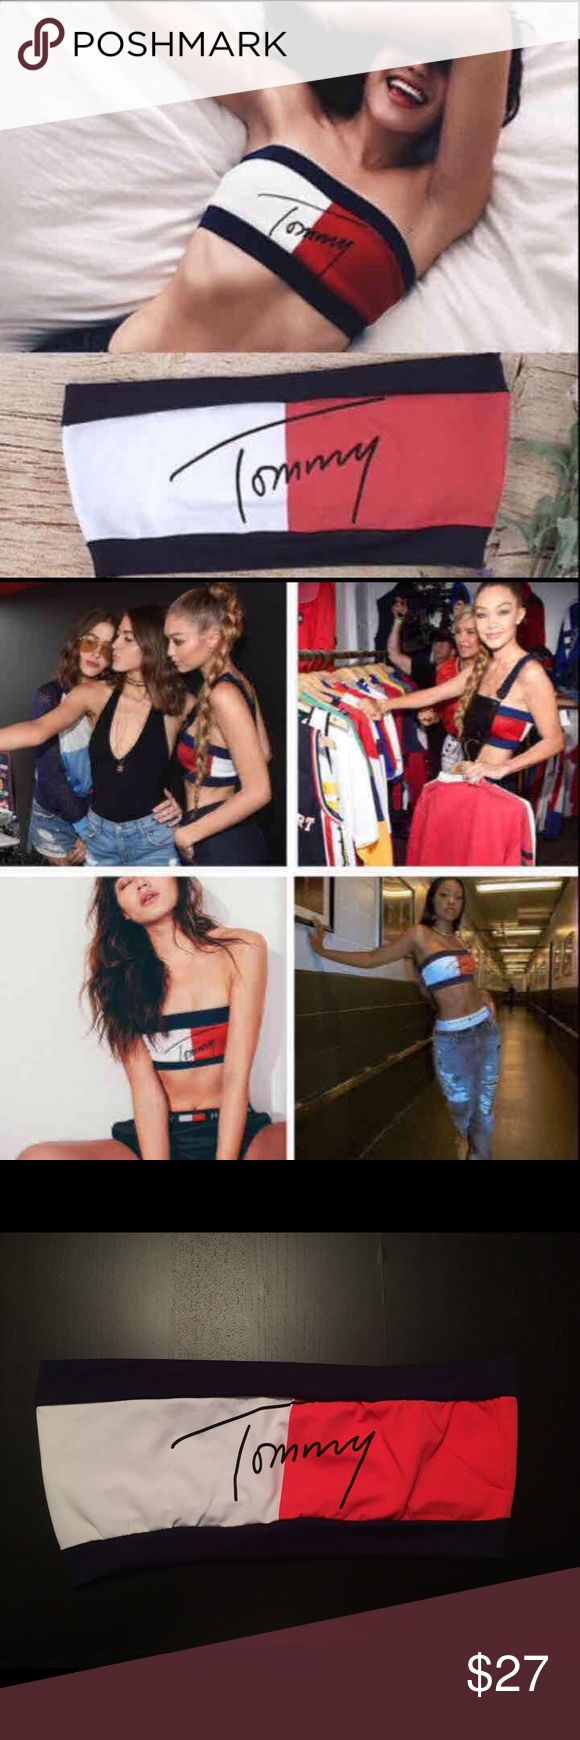 Tommy Hilfiger Bandeau Crop Top Tube Top One Tommy Hilfiger Bandeau Crop Top Tube Top size s S (4-6) and size M (8-10) available boutique  Tops Crop Tops